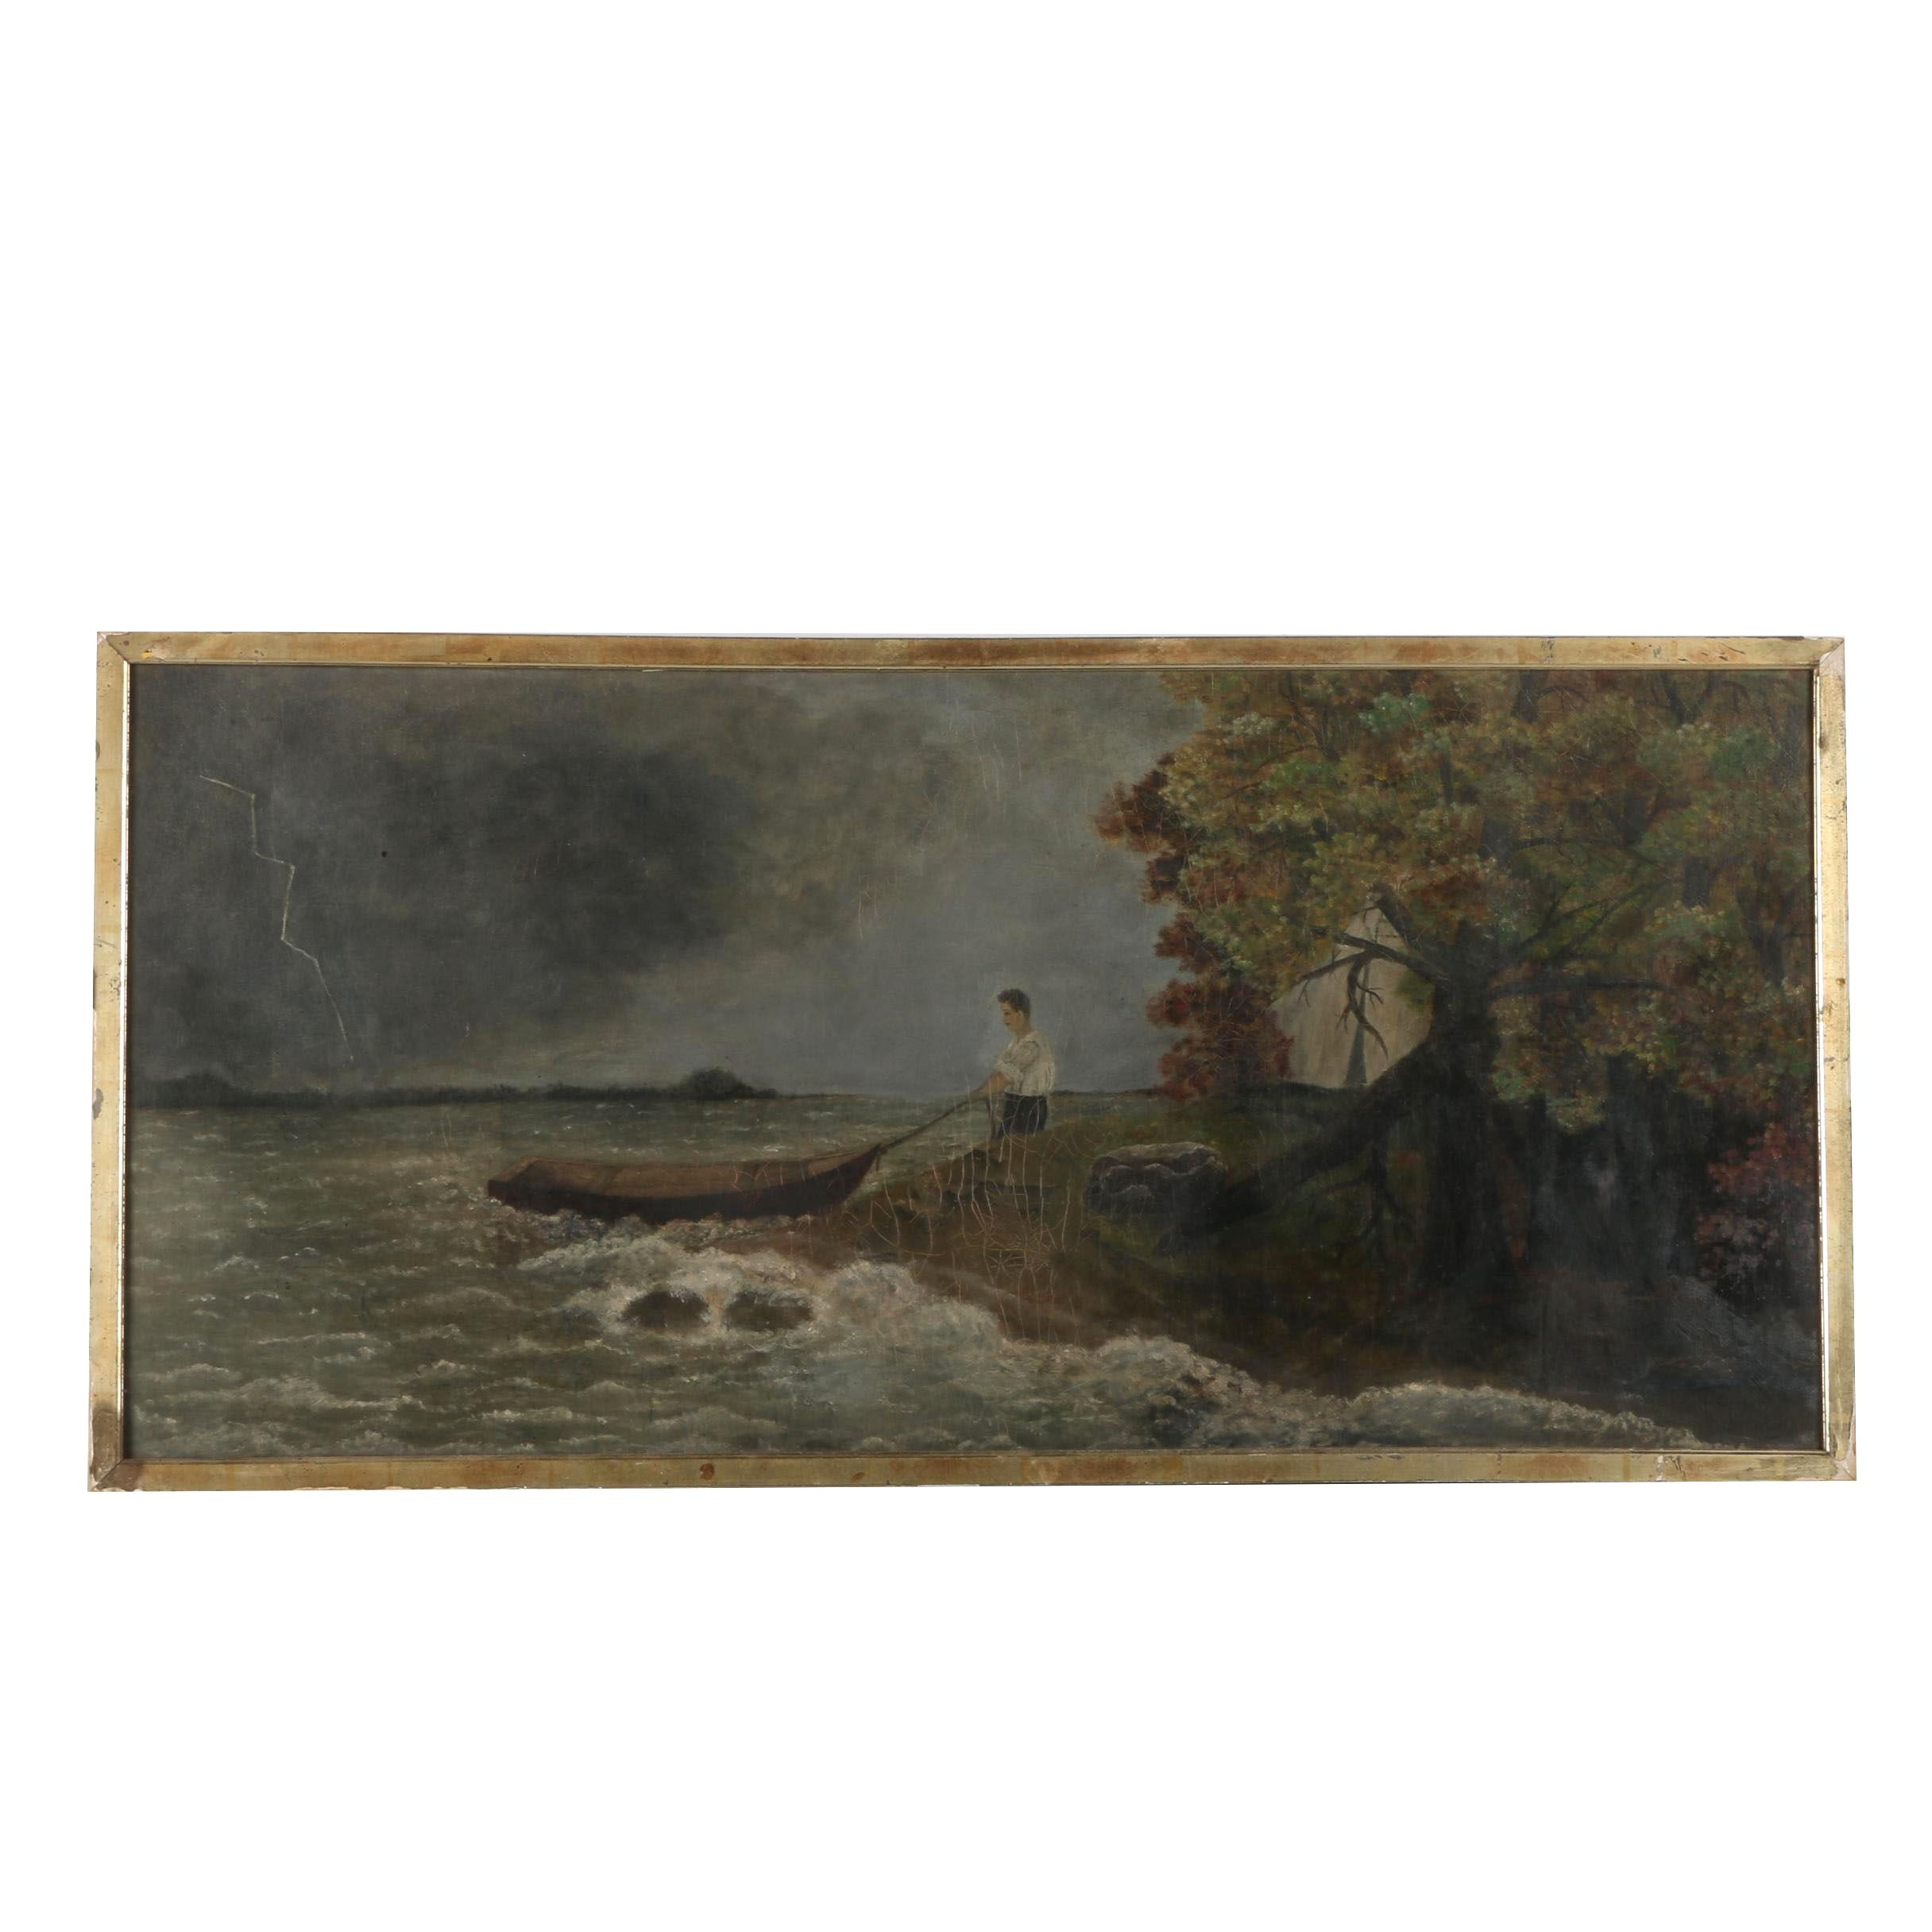 M. Odler Oil on Canvas of Man Pulling in Rowboat